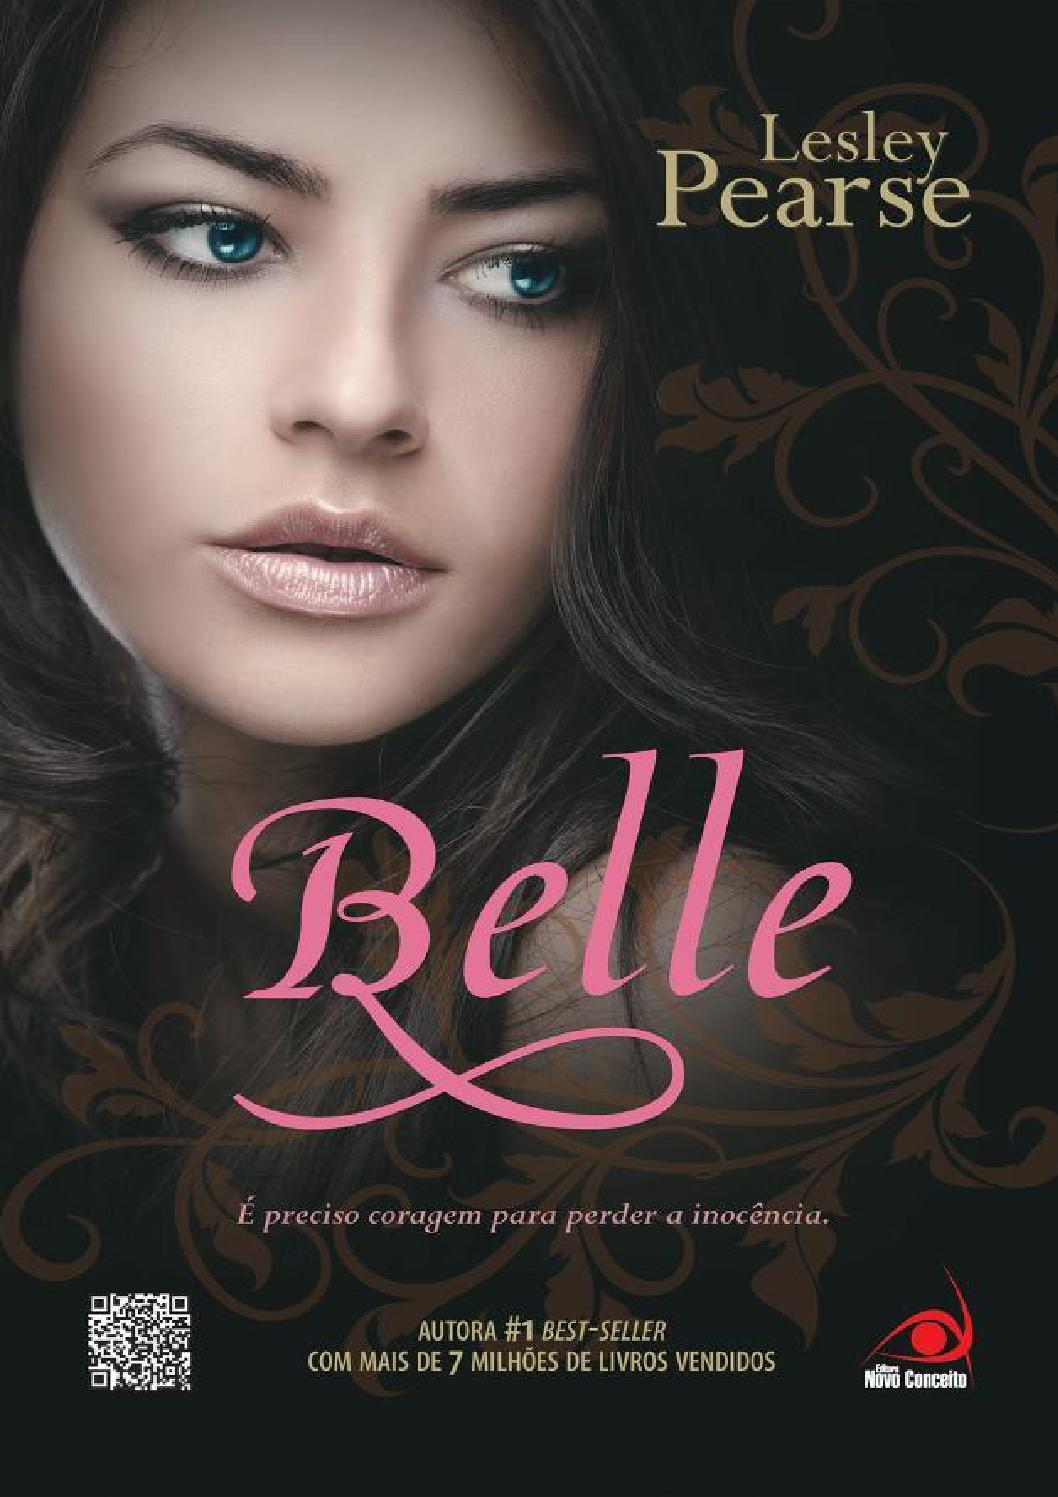 62929a0af Belle - Lesley Pearse by Mayana - issuu